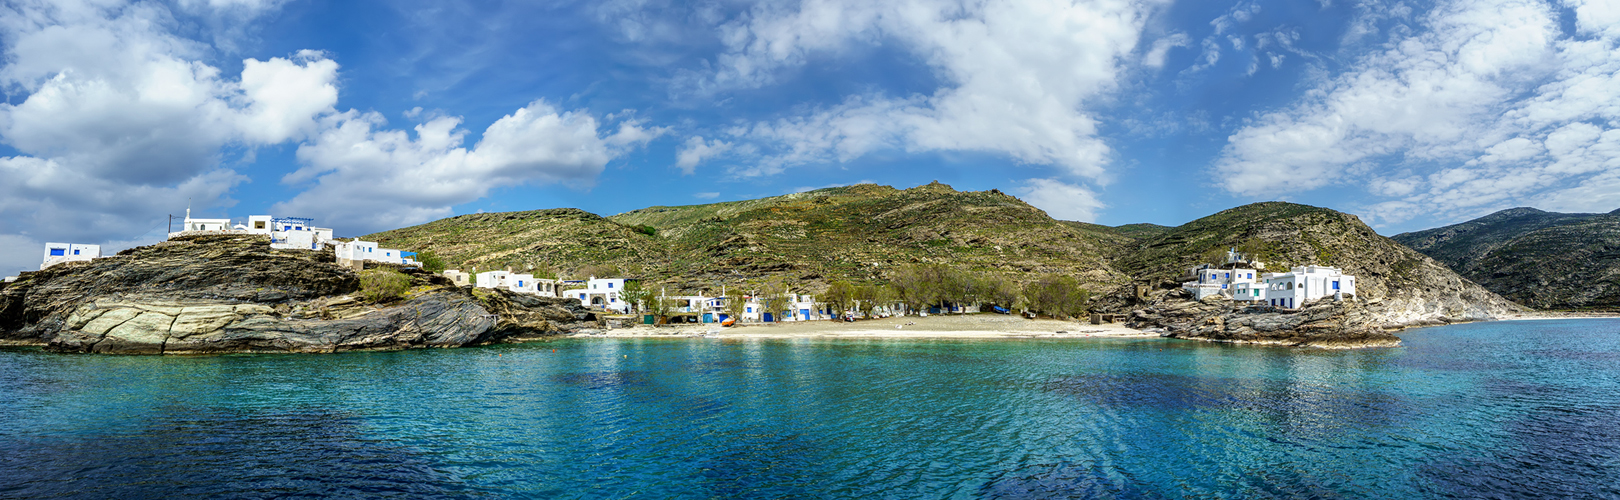 Enjoy your stay at Tinos island